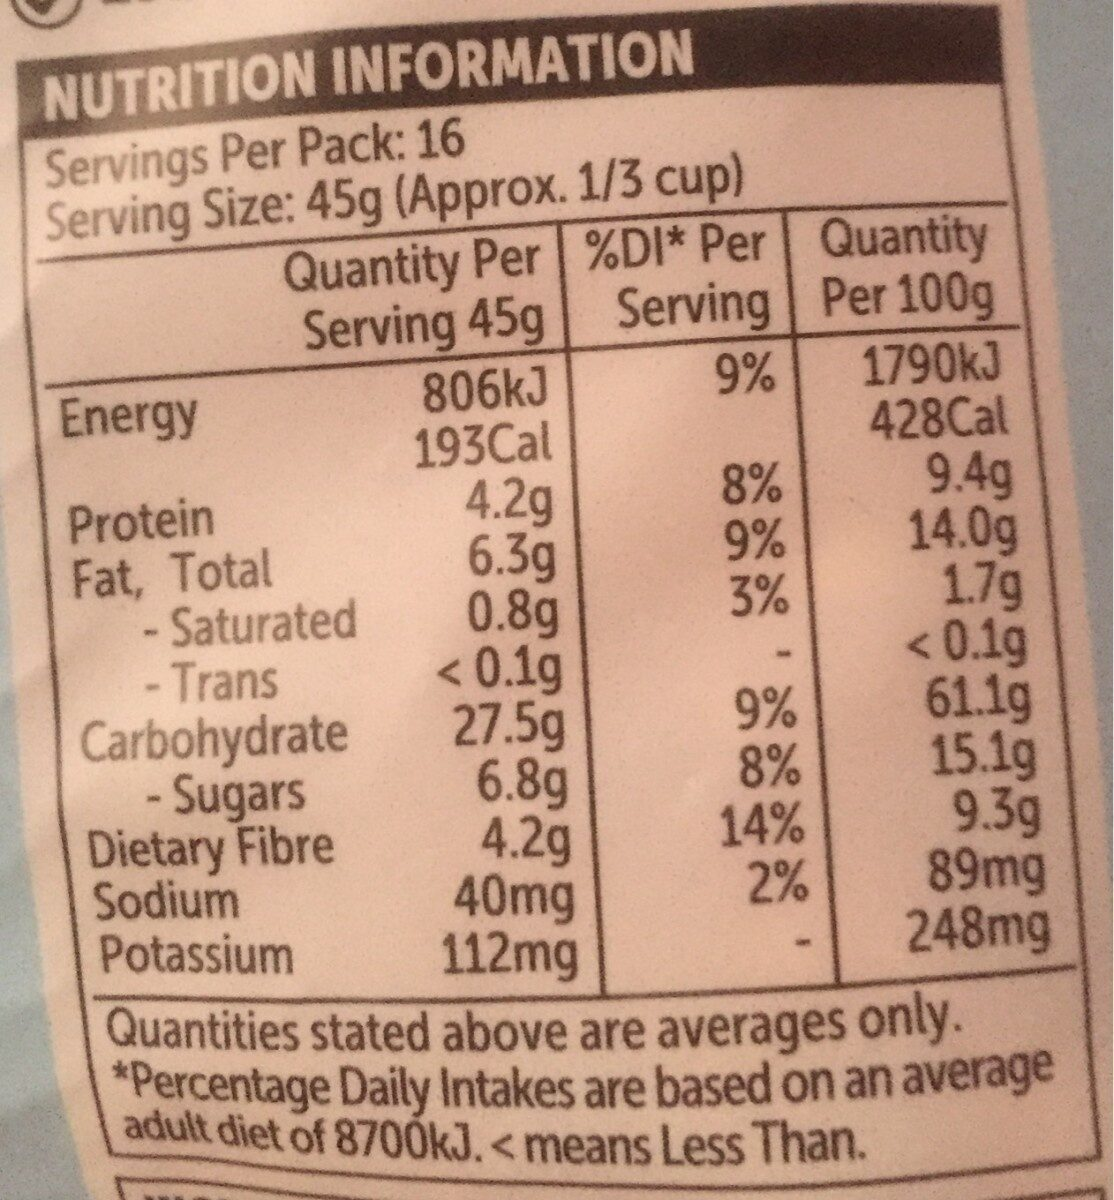 Crunchy clusters almond & vanilla - Nutrition facts